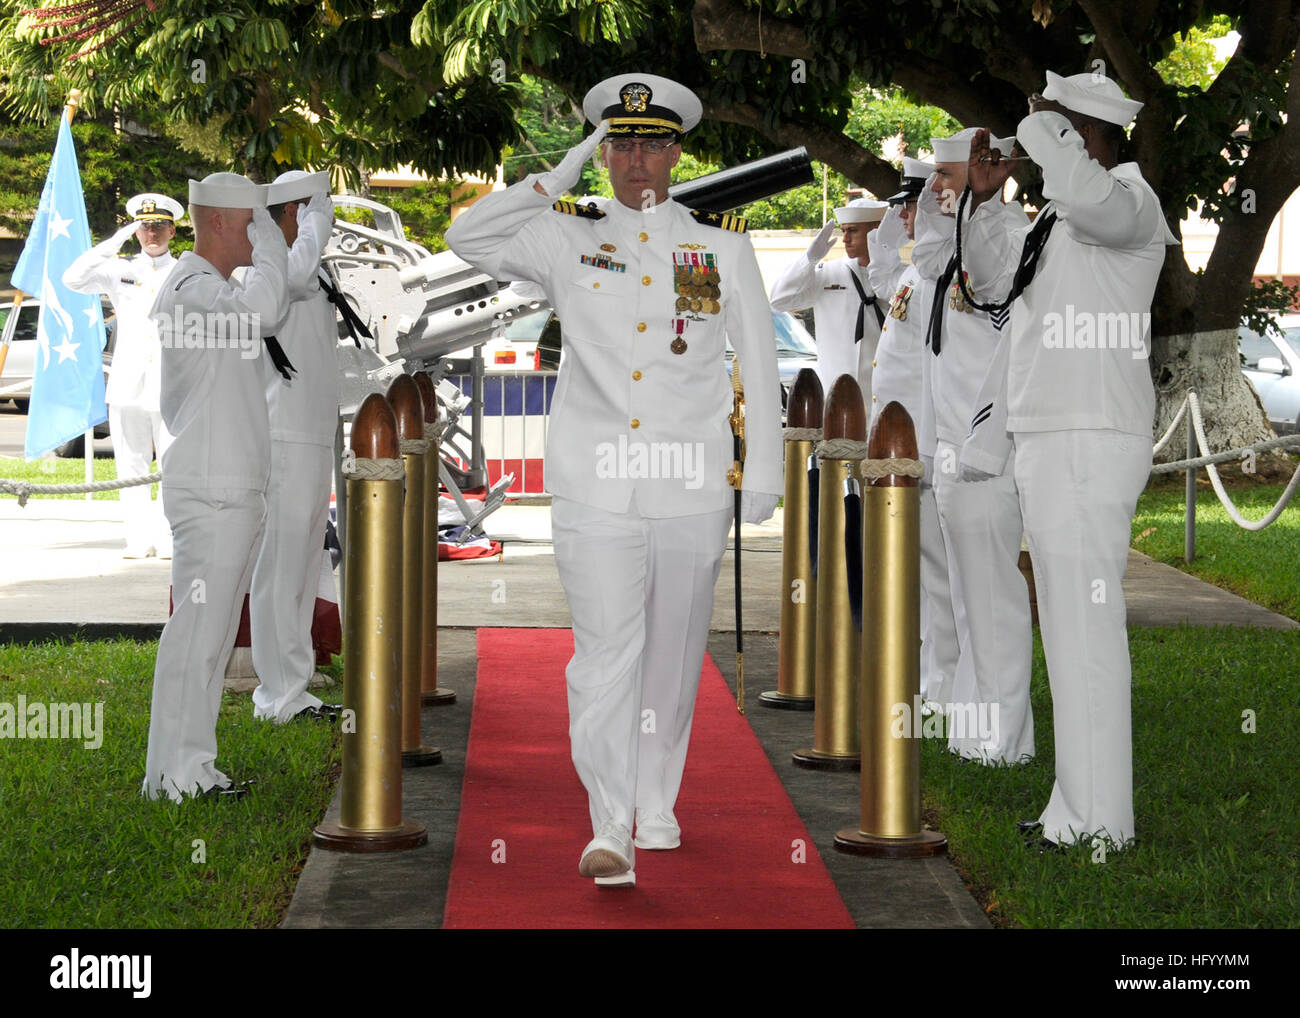 110729-N-UK333-127 JOINT BASE PEARL HARBOR-HICKAM (July 29, 2011) Cmdr. Robert Gaucher is piped ashore during a Stock Photo